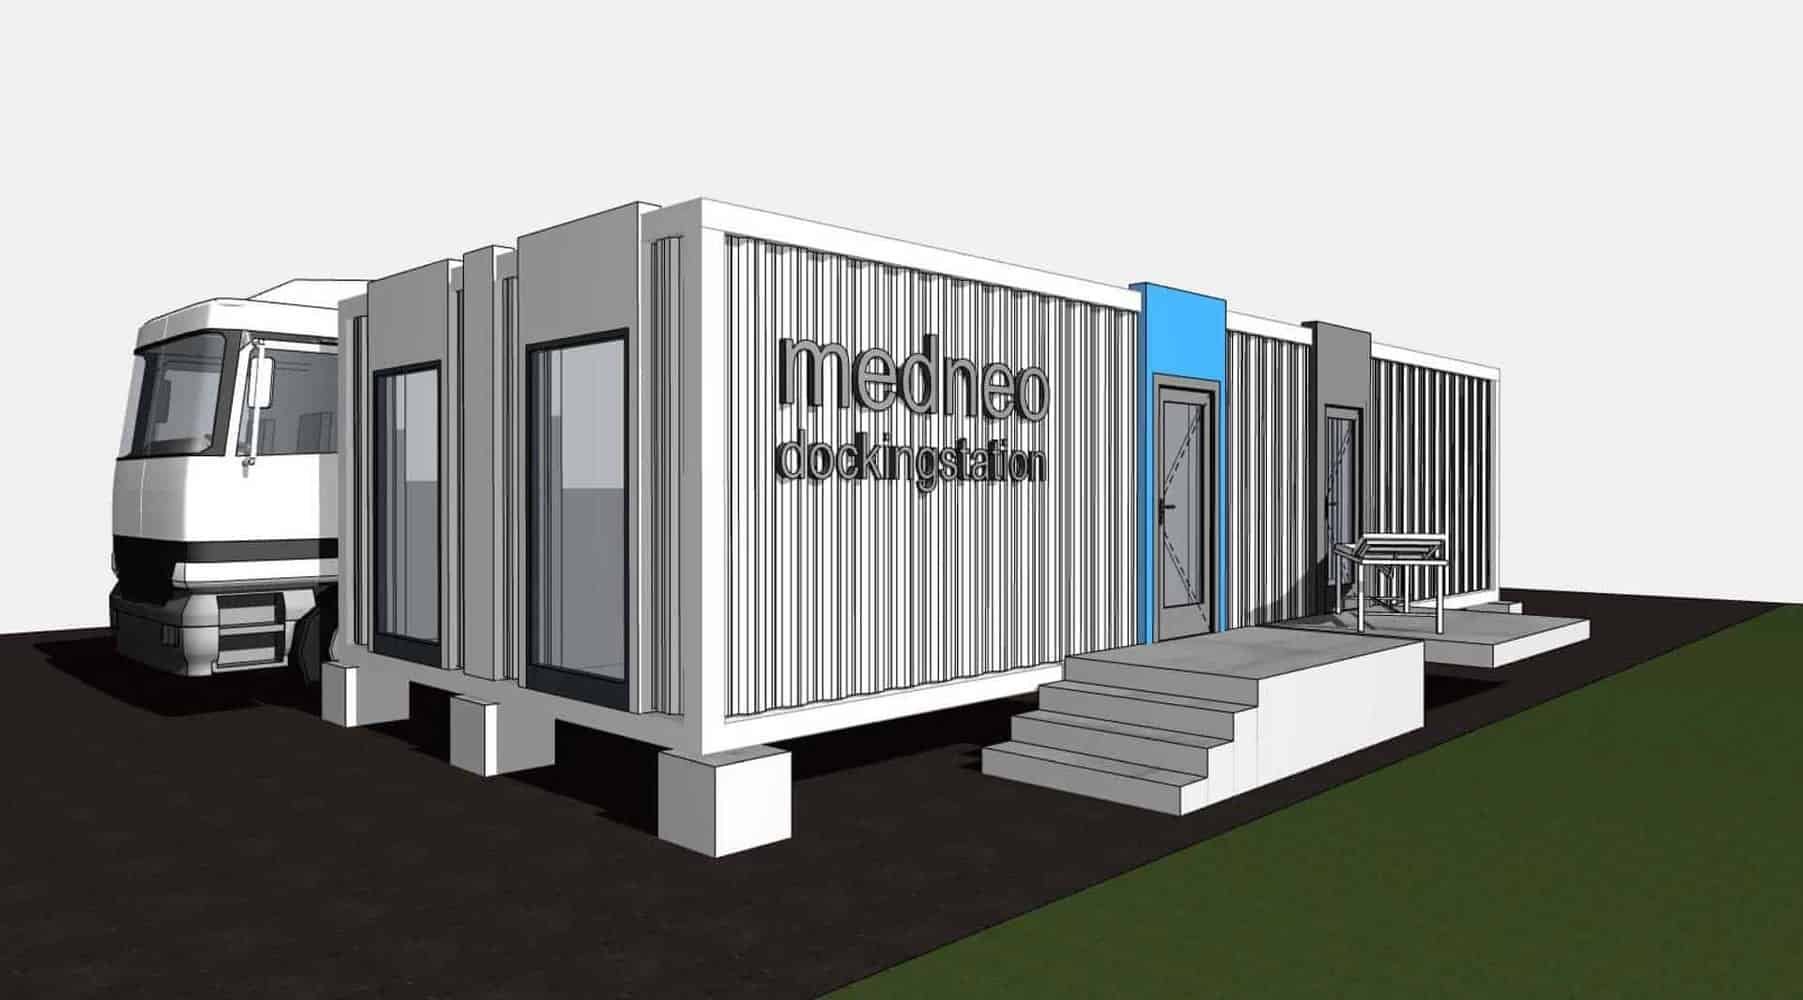 medneo Dockingstation, medneo GmbH, Konzeptentwicklung, Architektur, Referenz, Berlin, MRT, mobile Radiologie, Seecontainer